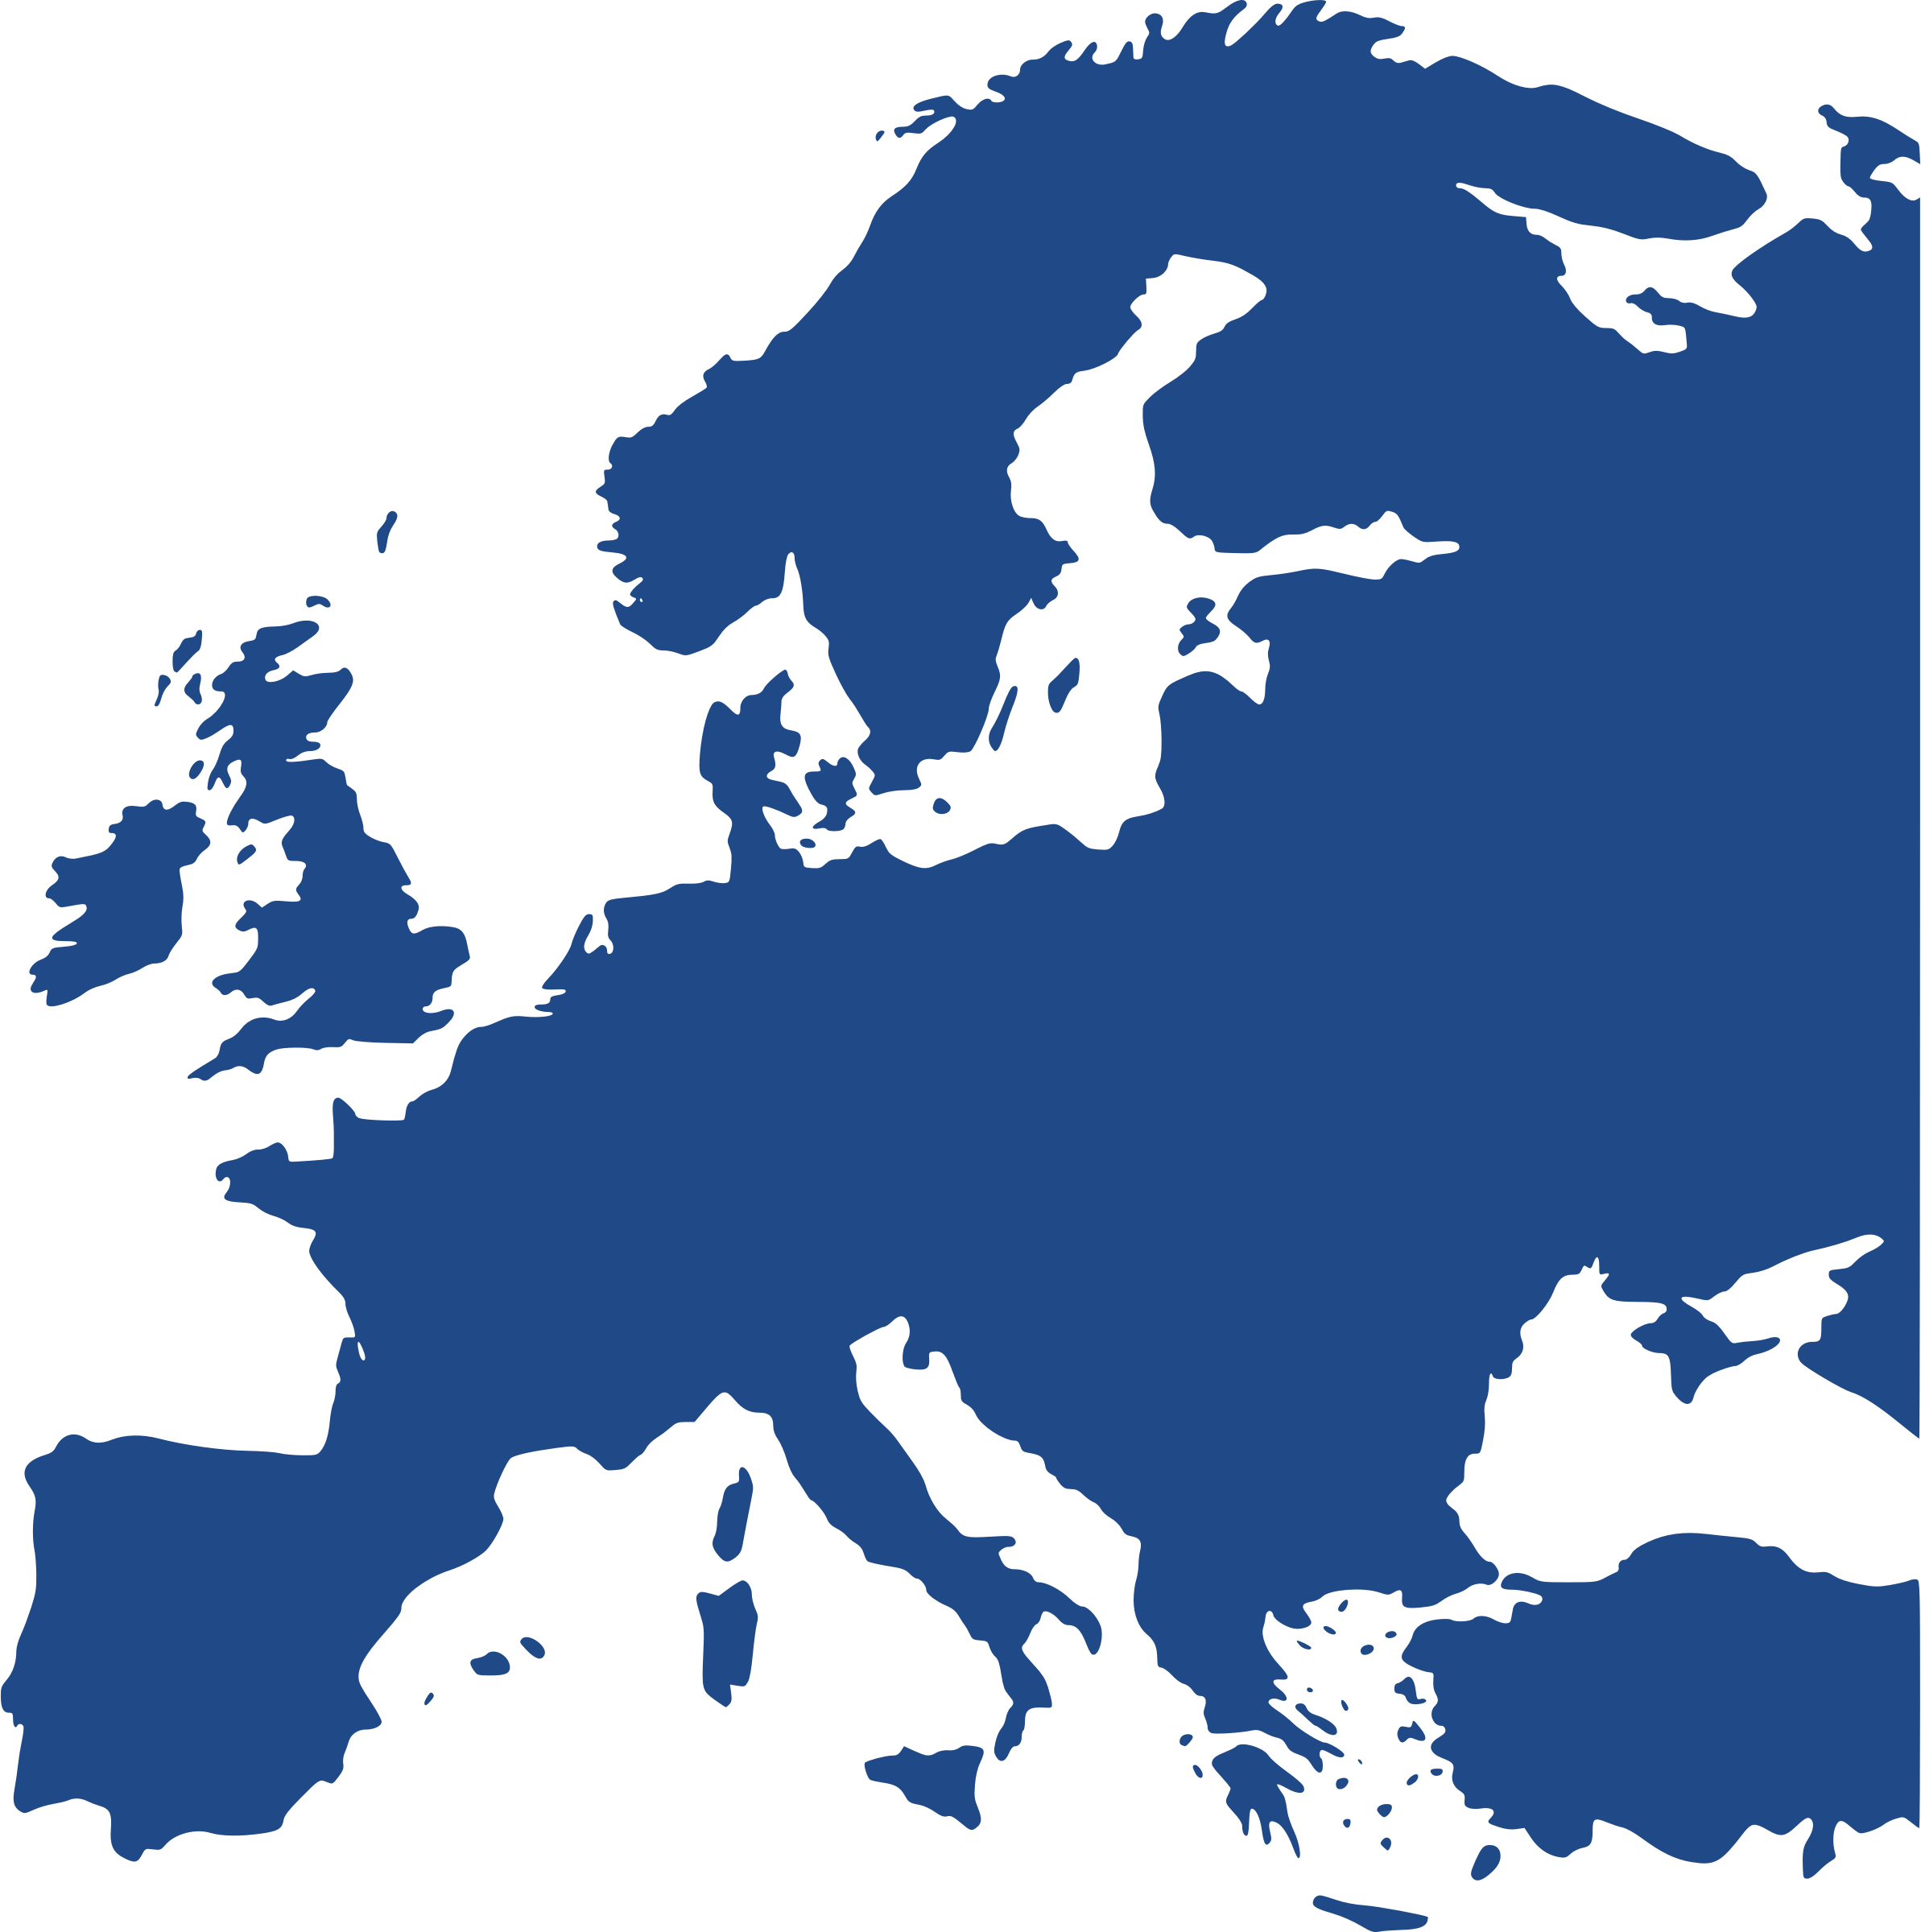 collection of map. Europe clipart labled